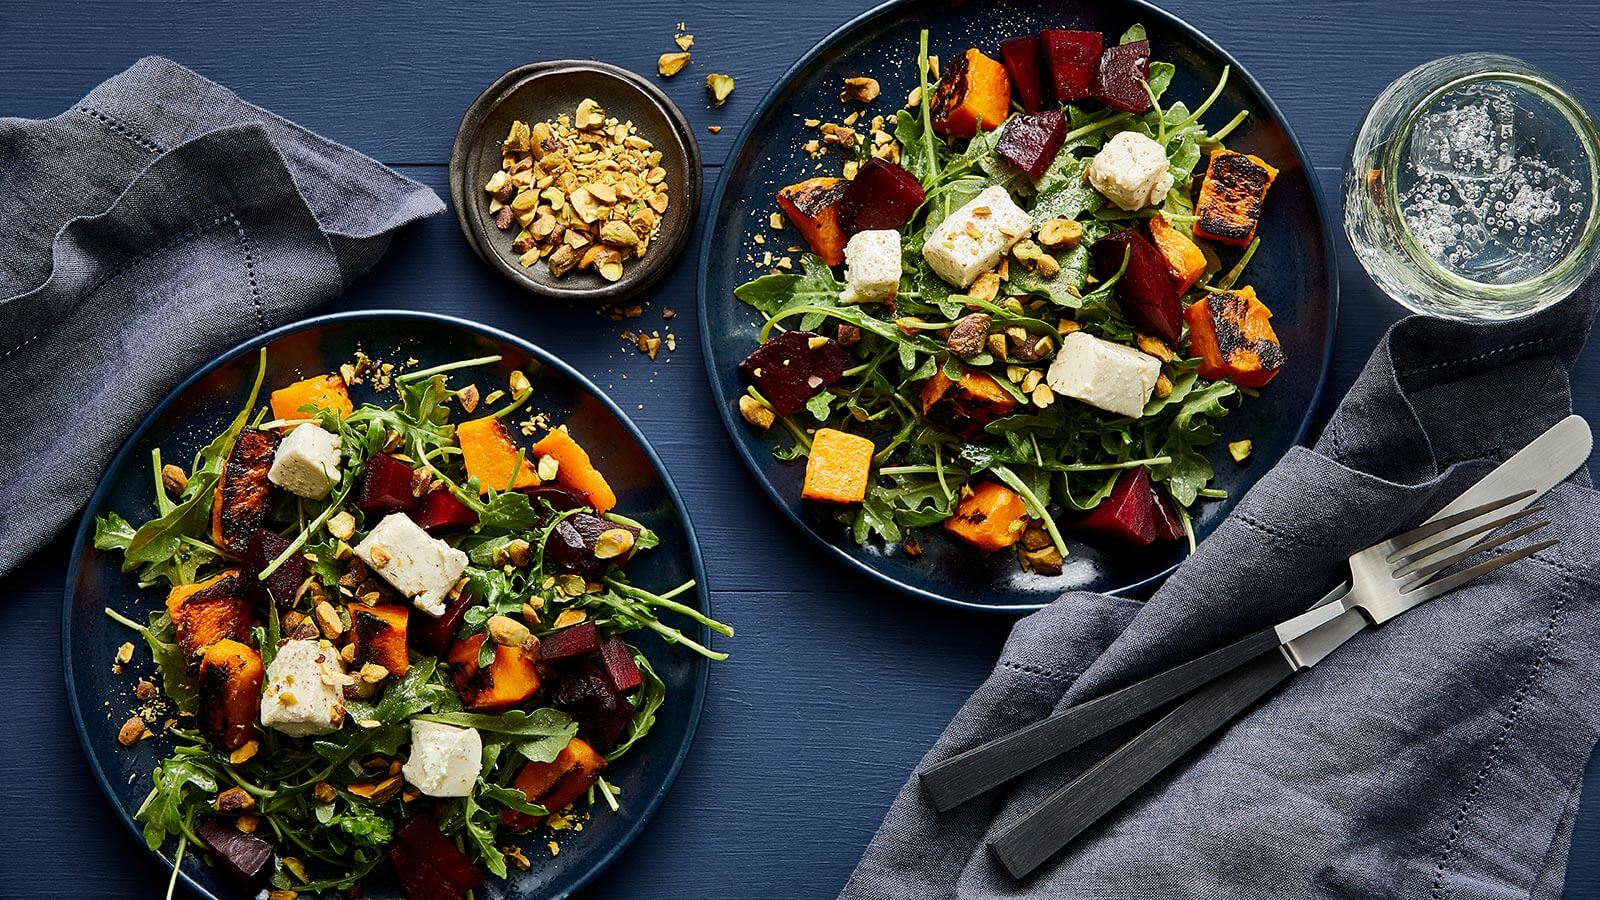 Roasted Butternut Squash Salad with Beets and Marinated Goat Cheese